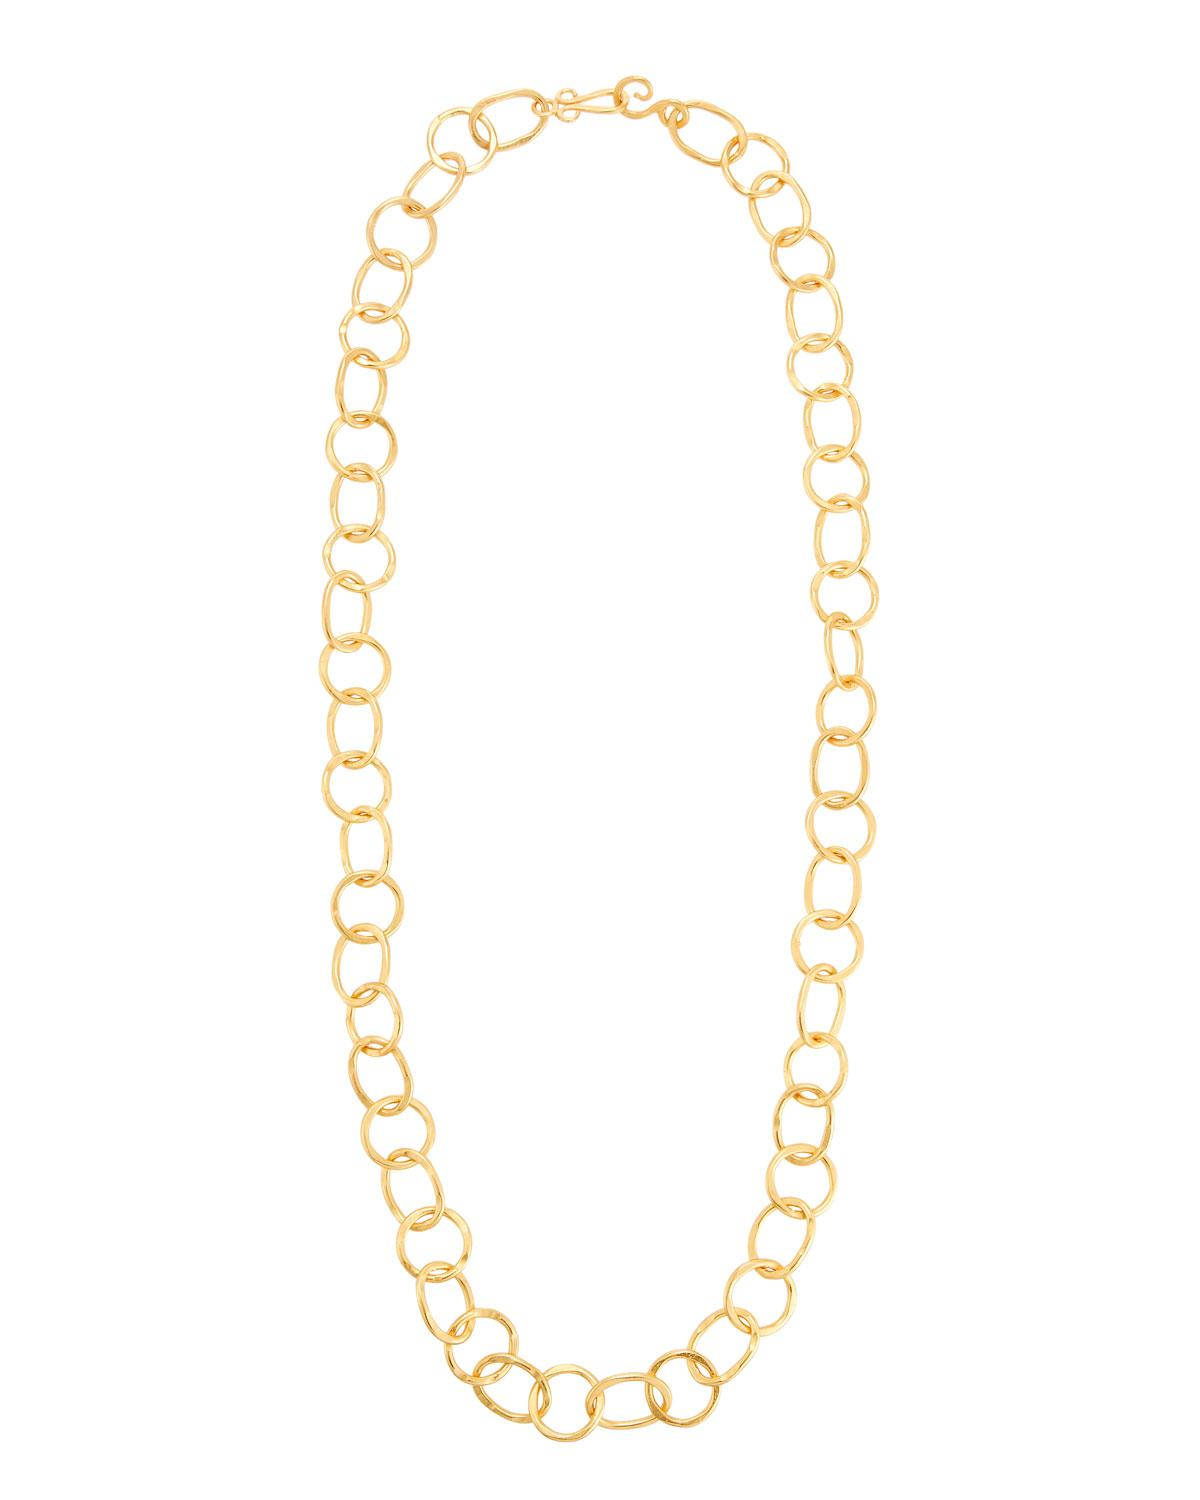 Stephanie Kantis Legend 24k Gold-Plated Extra Long Circle-Link Necklace KiSGE2C